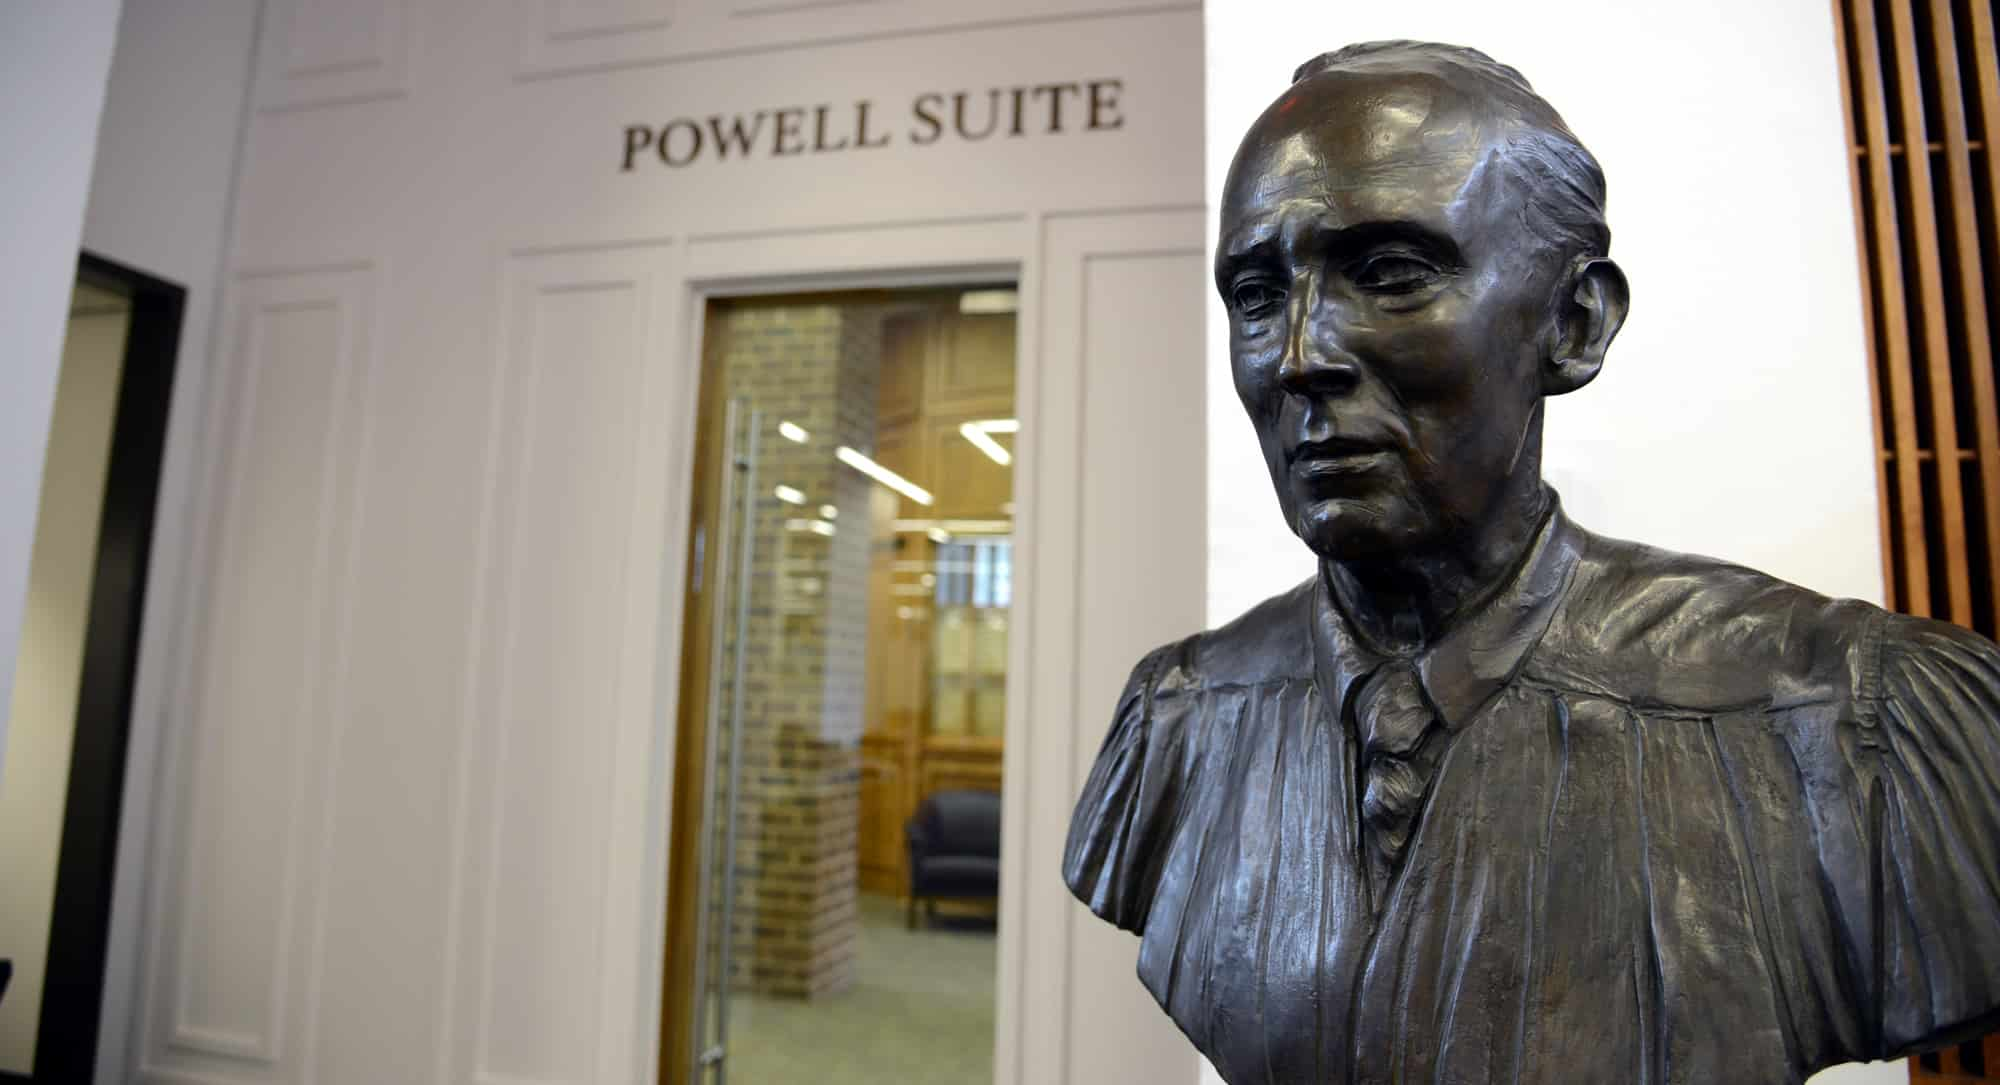 powellshot Powell Archives at W&L Law Turns 25